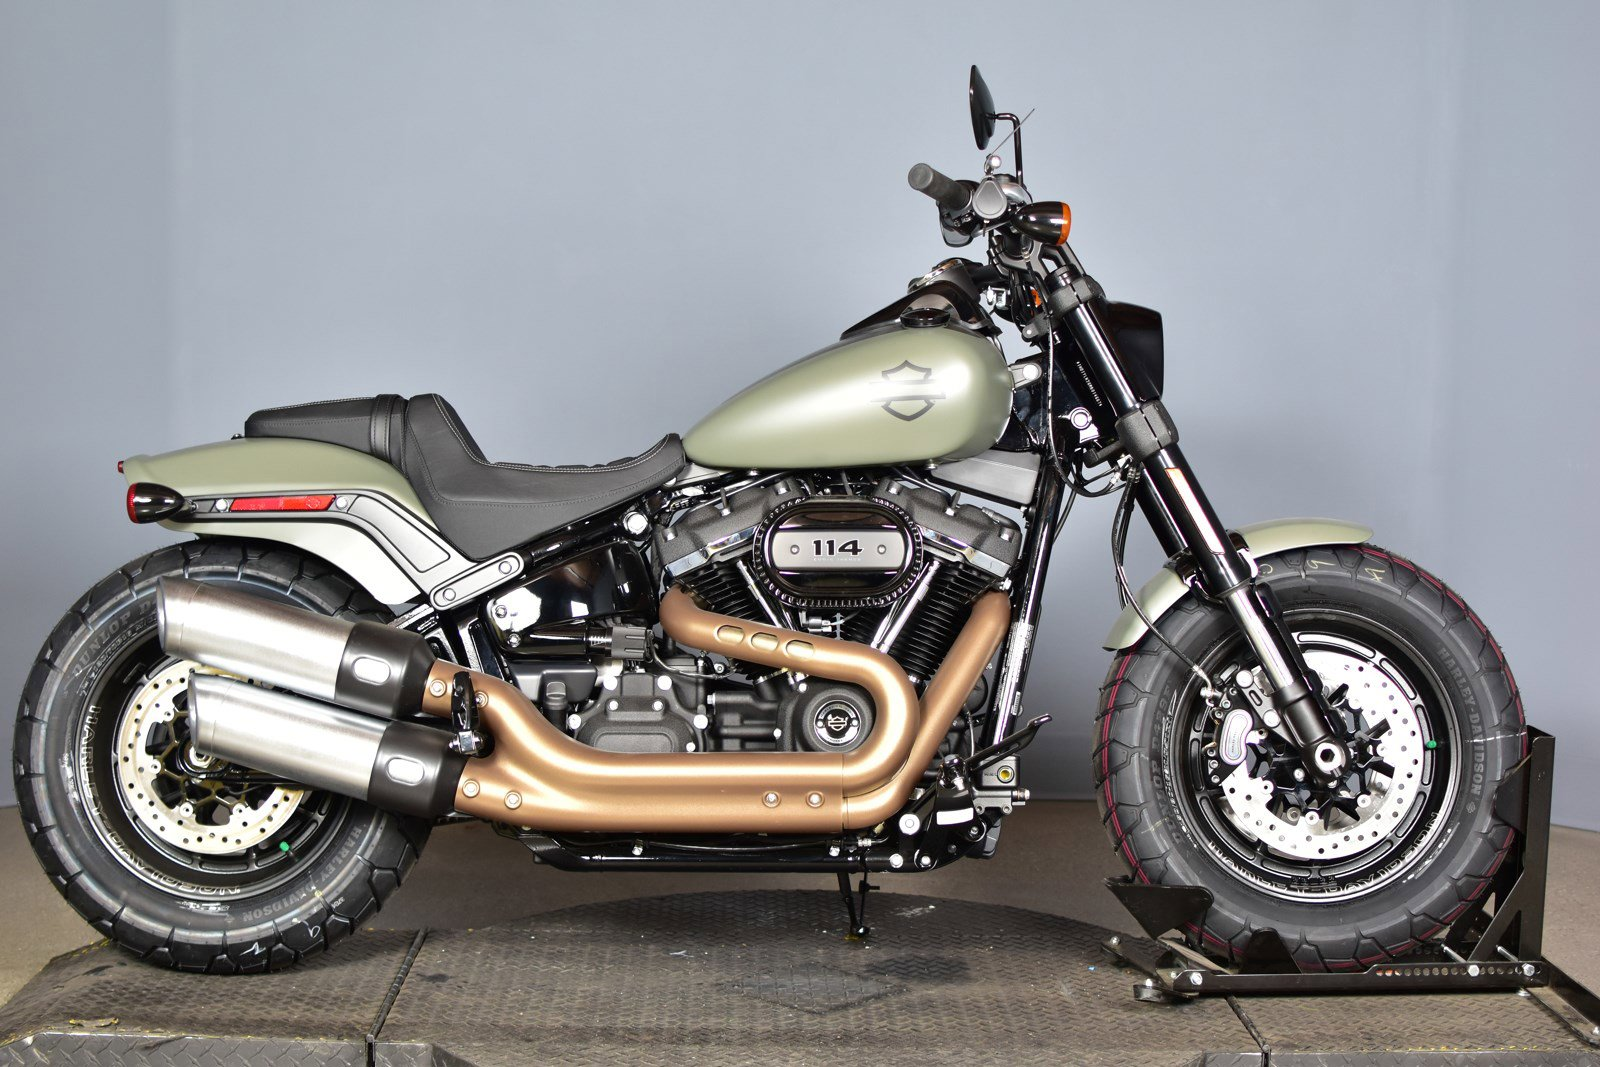 New 2021 Harley-Davidson Softail Fat Bob 114 FXFBS